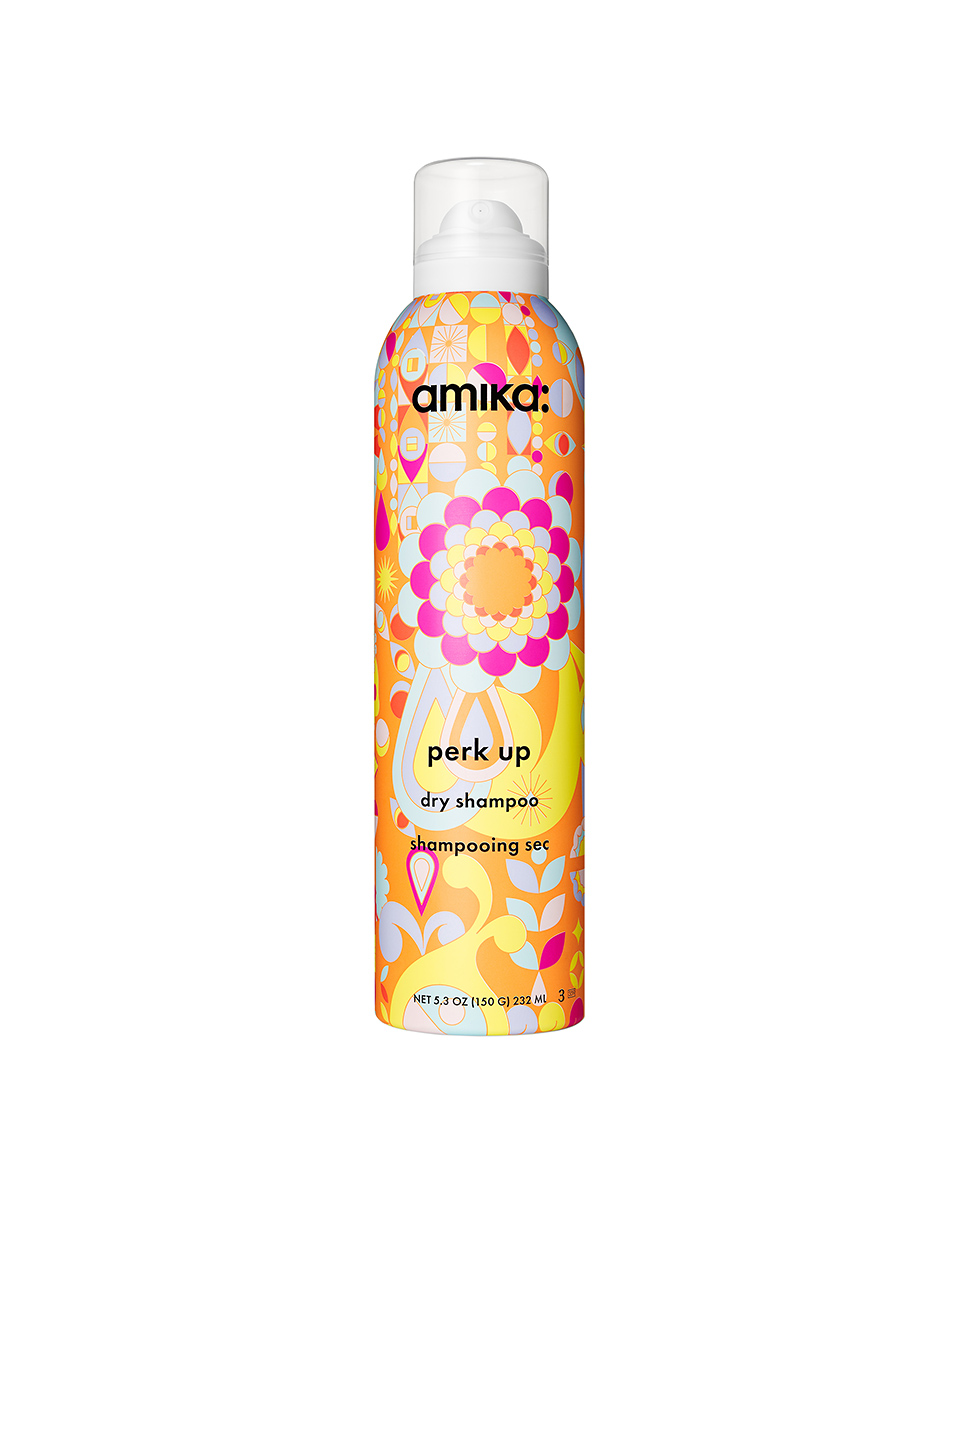 Amika PERK UP Dry Shampoo in